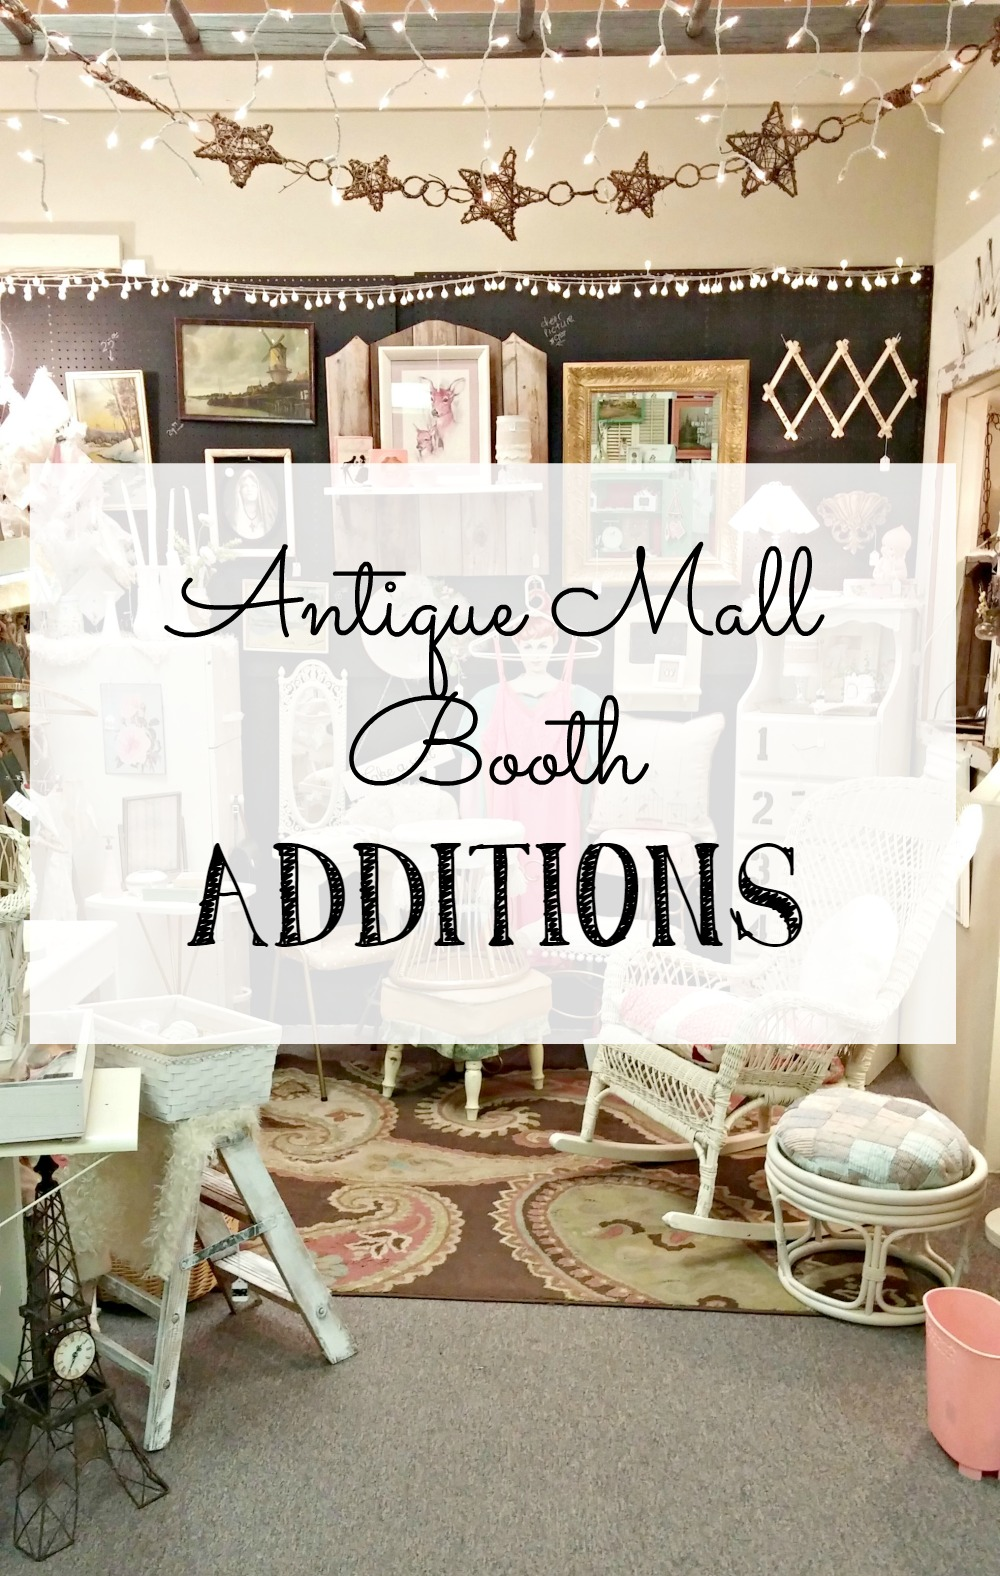 Antique Mall Booth Additions Little Vintage Cottage : booth6 from www.littlevintagecottage.com size 1000 x 1576 jpeg 429kB